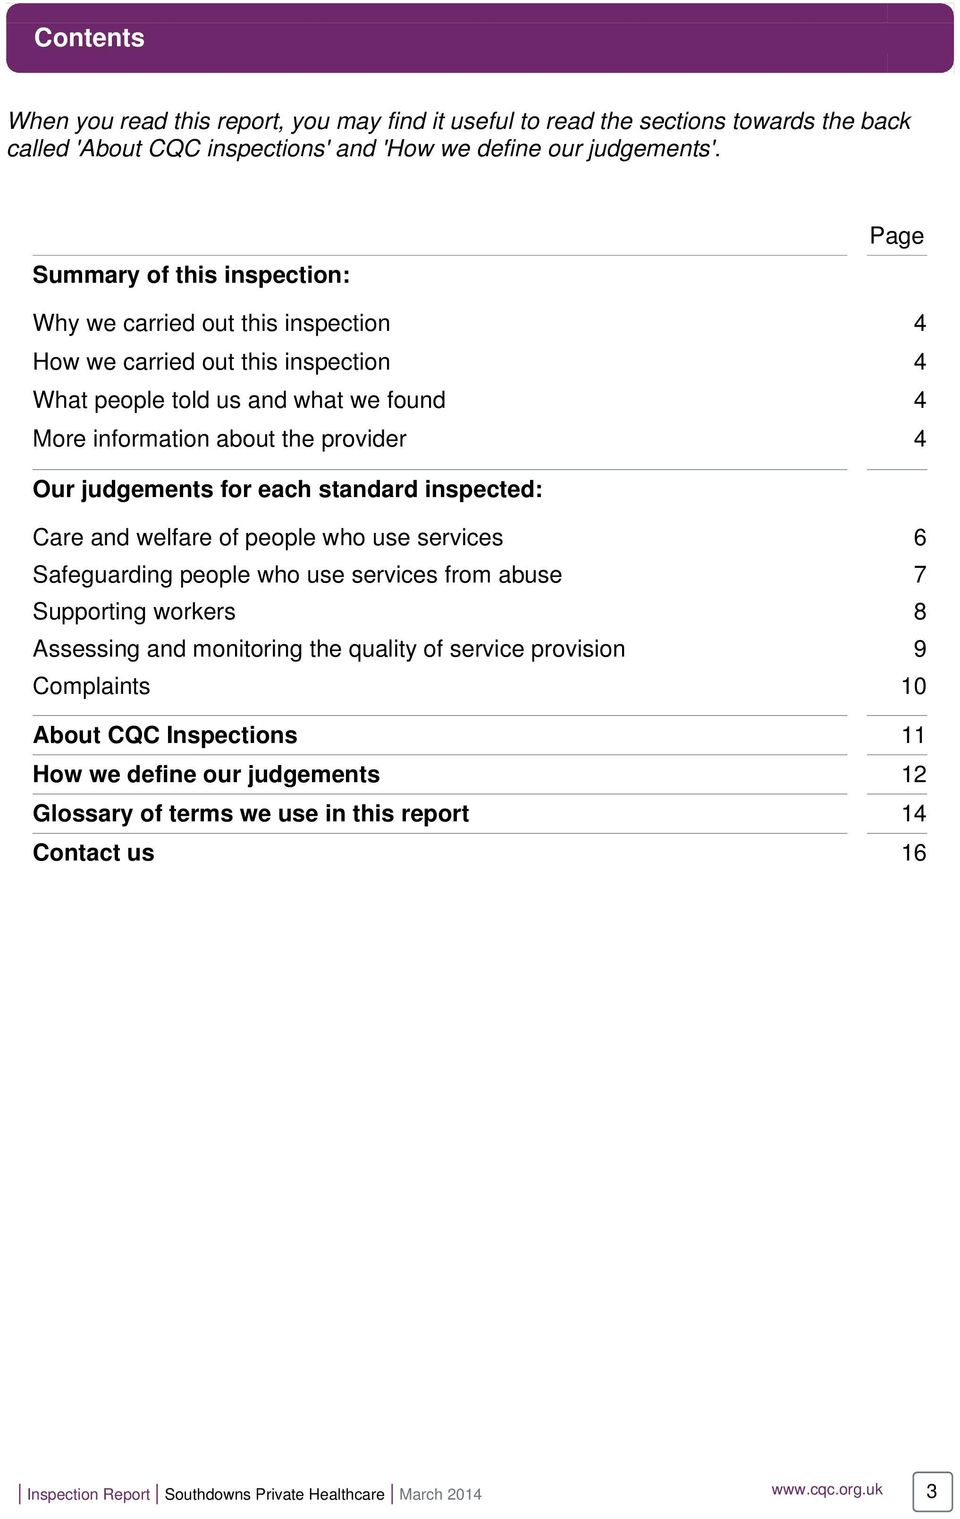 judgements for each standard inspected: Care and welfare of people who use services 6 Safeguarding people who use services from abuse 7 Supporting workers 8 Assessing and monitoring the quality